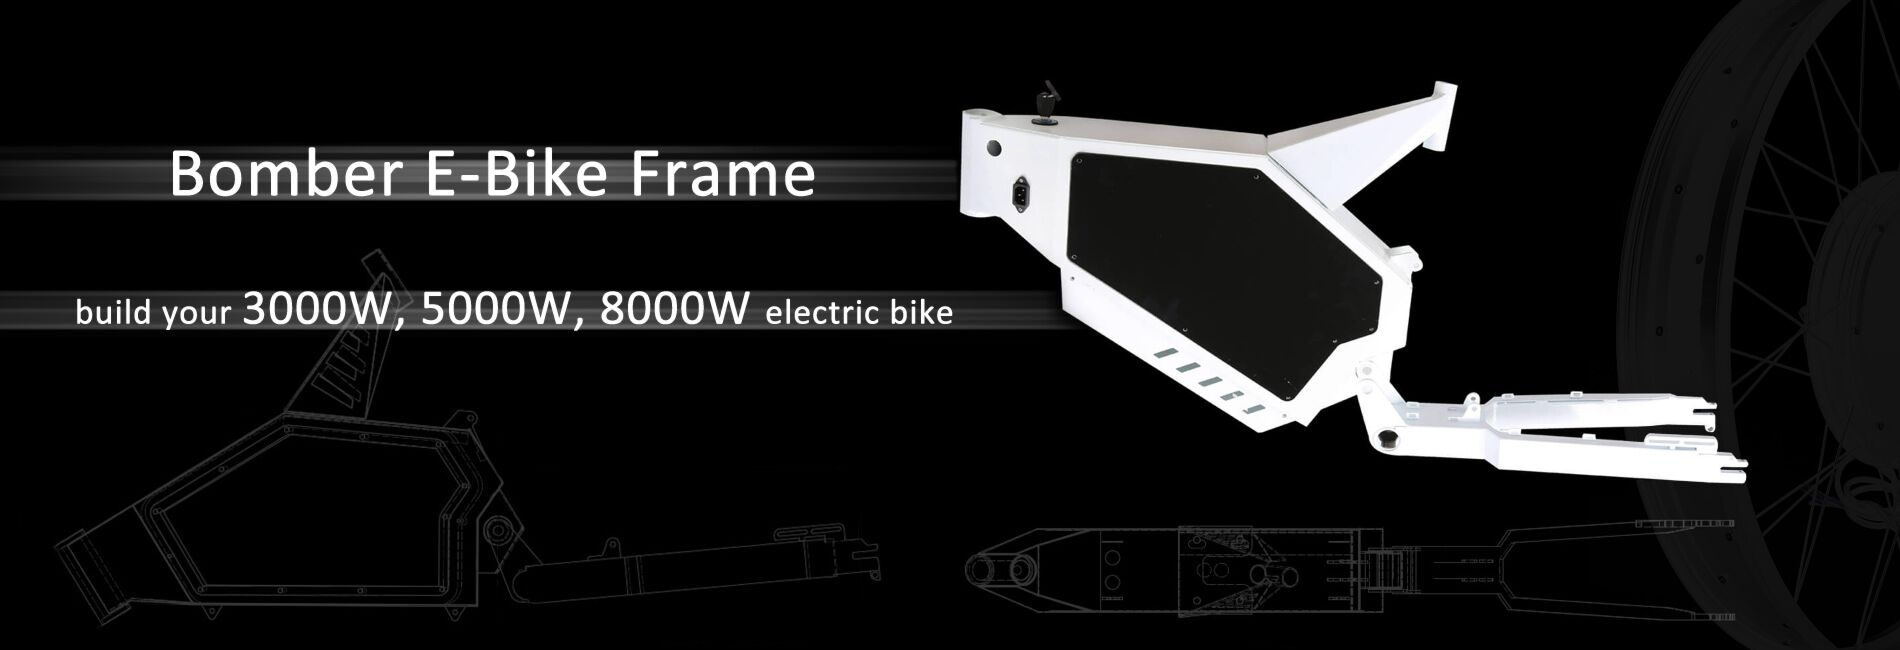 https://www.elecycles.com/3000w-5000w-8000w-electri-bike-frame-bomber-electric-bike-frame.html